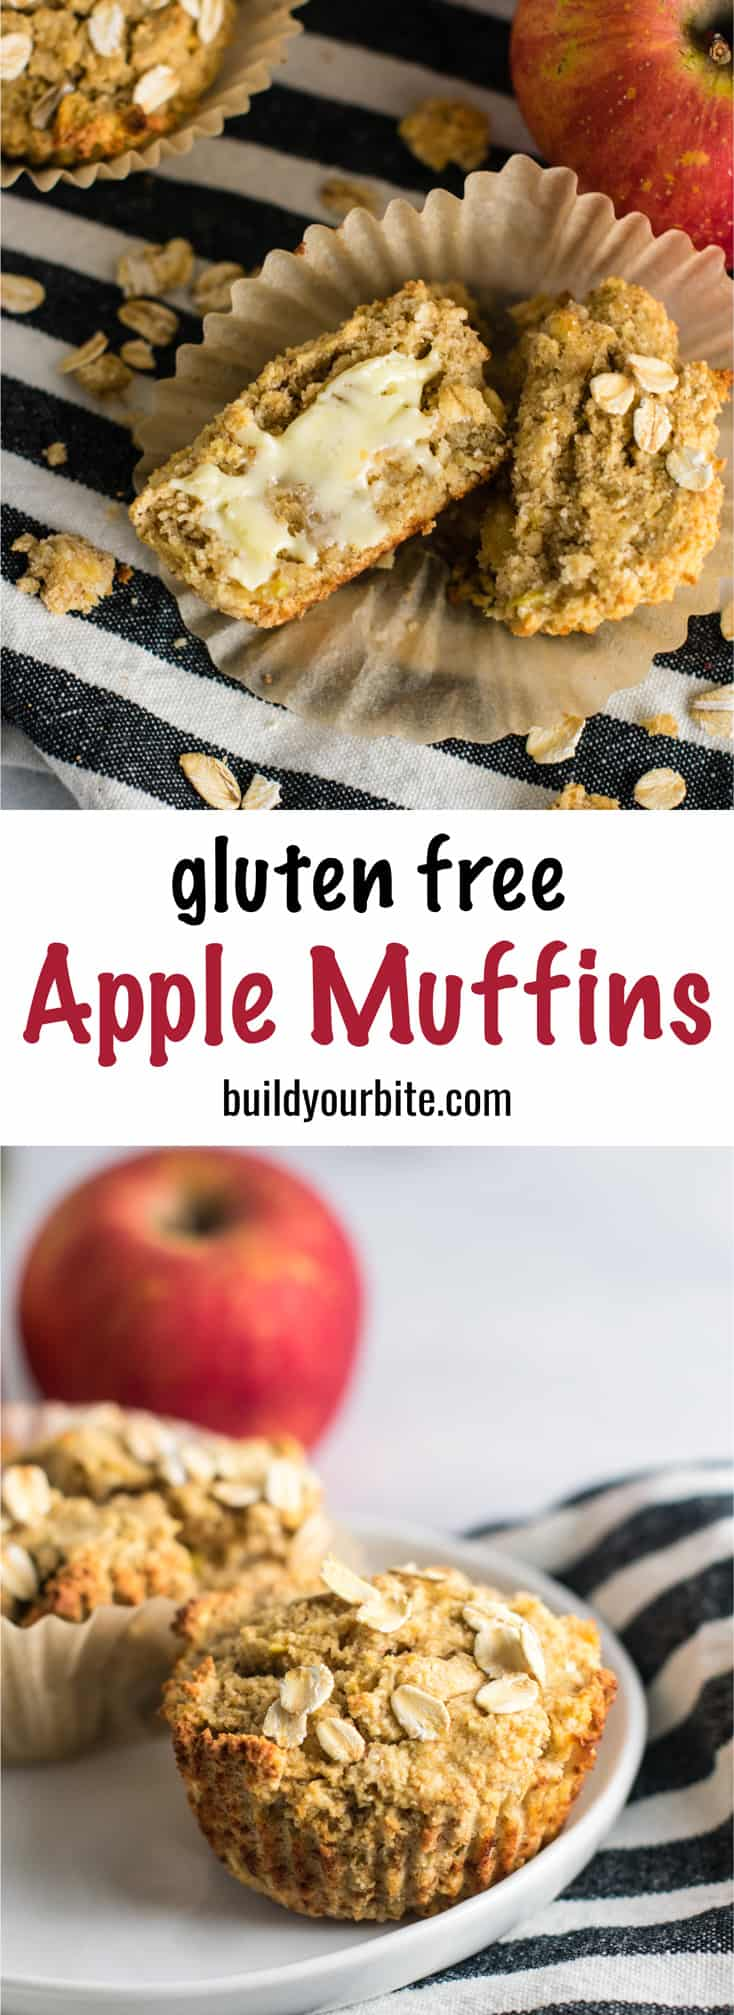 Gluten Free Apple Muffins Recipe with coconut flour and oat flour. Naturally gluten free and so soft and delicious. They taste like apple pie to me! #glutenfree #applemuffins #oatflour #coconutflour #glutenfreemuffins #breakfast #glutenfreebreakfast #dairyfree